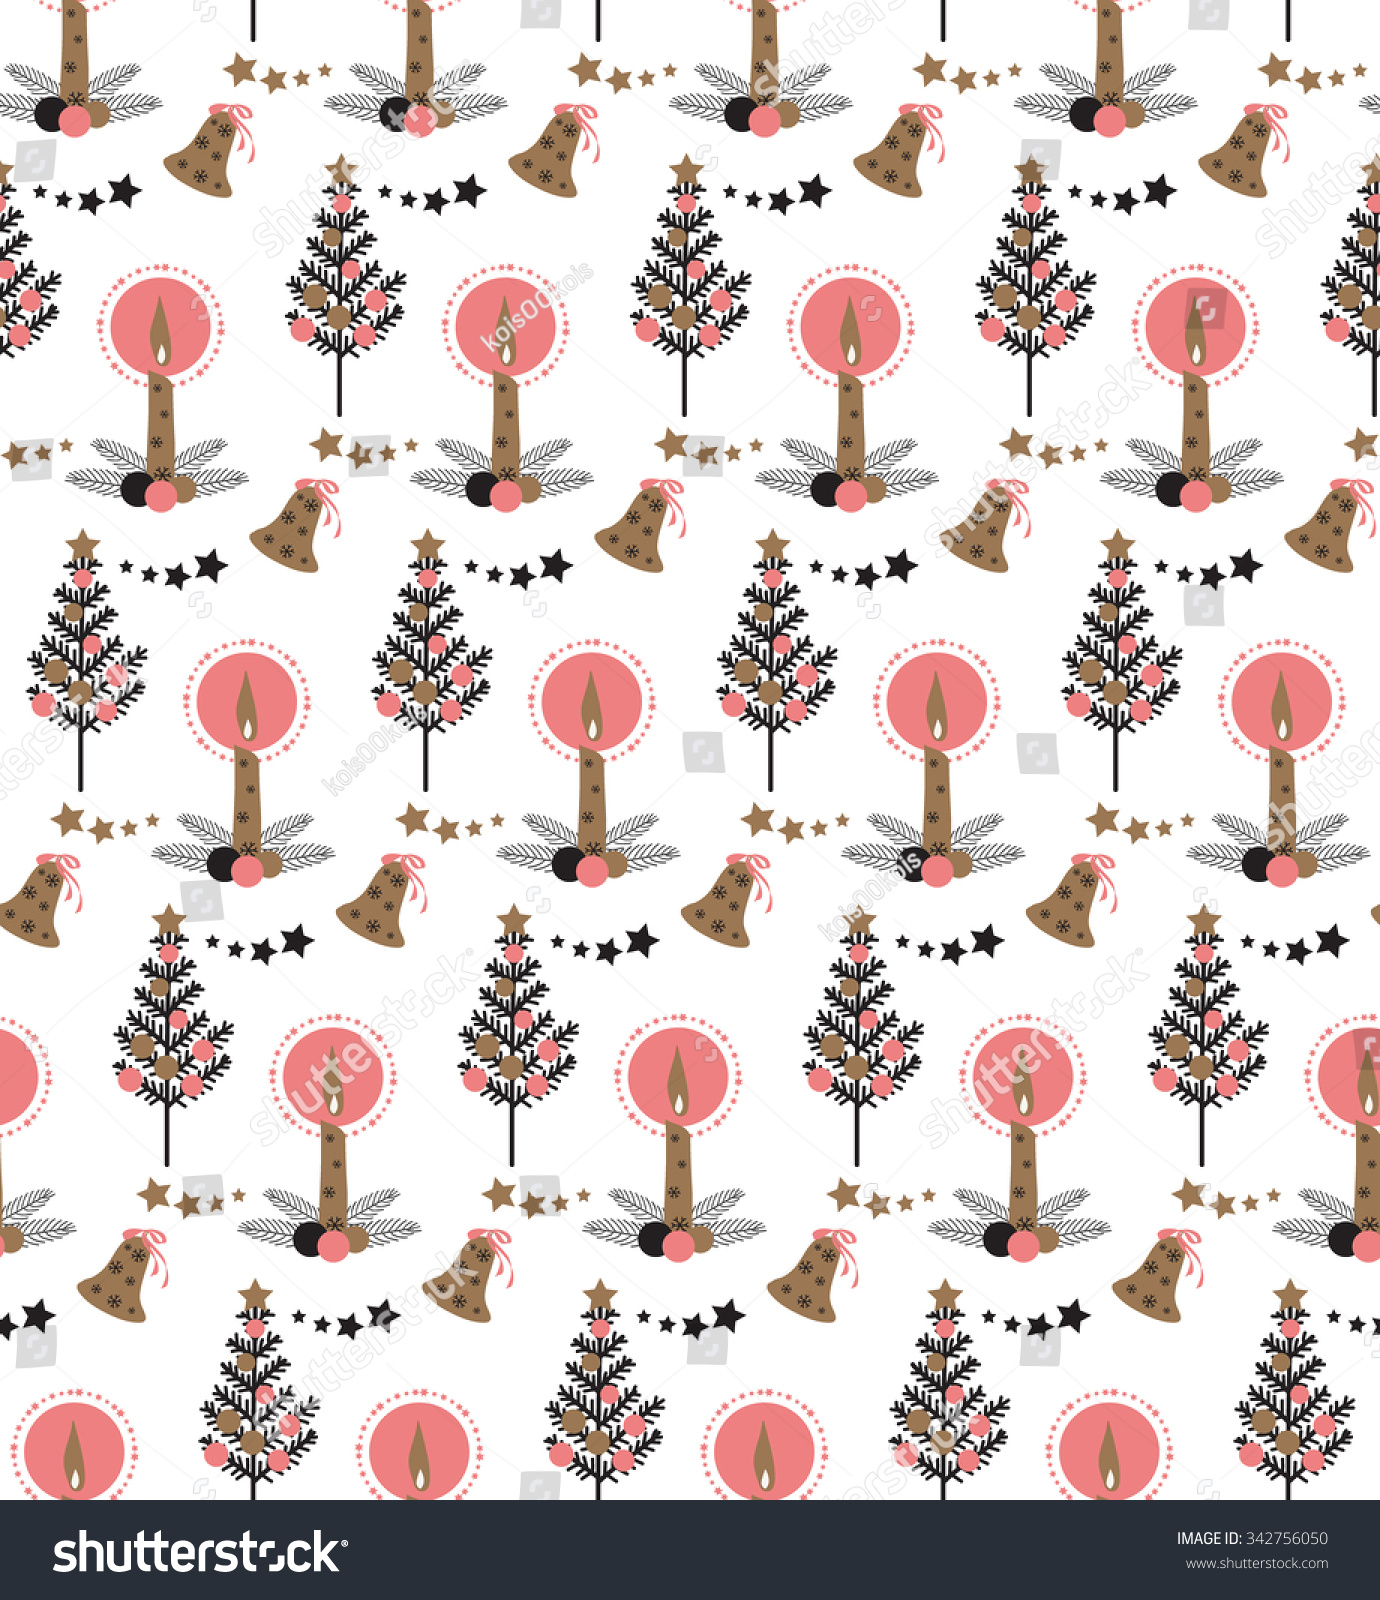 Christmas tree burning candle ornament bell stock vector 342756050 christmas tree burning candle ornament bell star seamless pattern on white background sciox Images